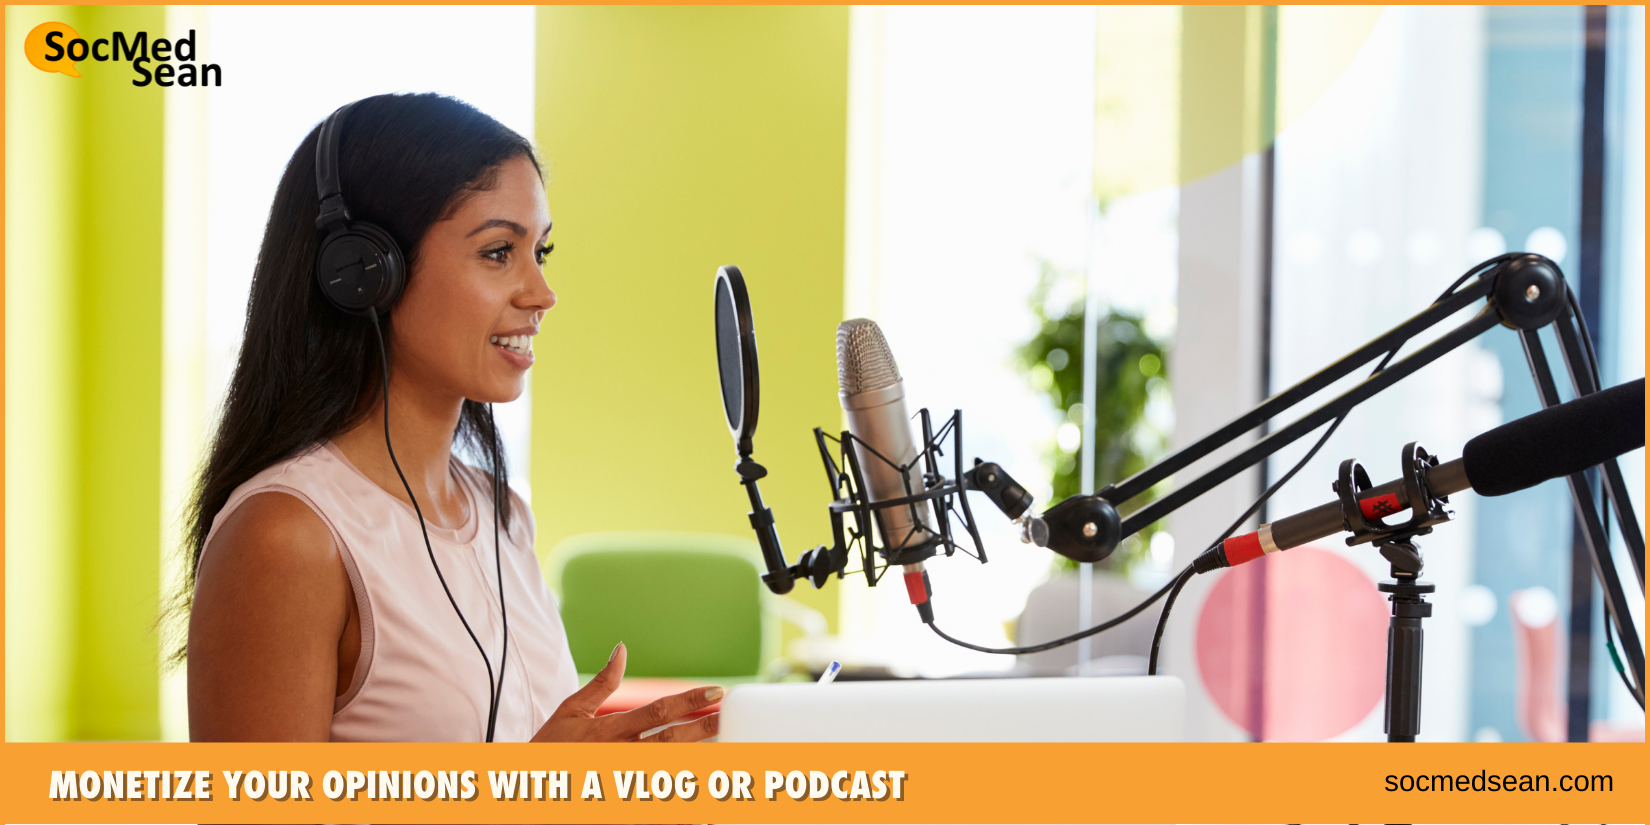 Monetize your opinions with a vlog or podcast